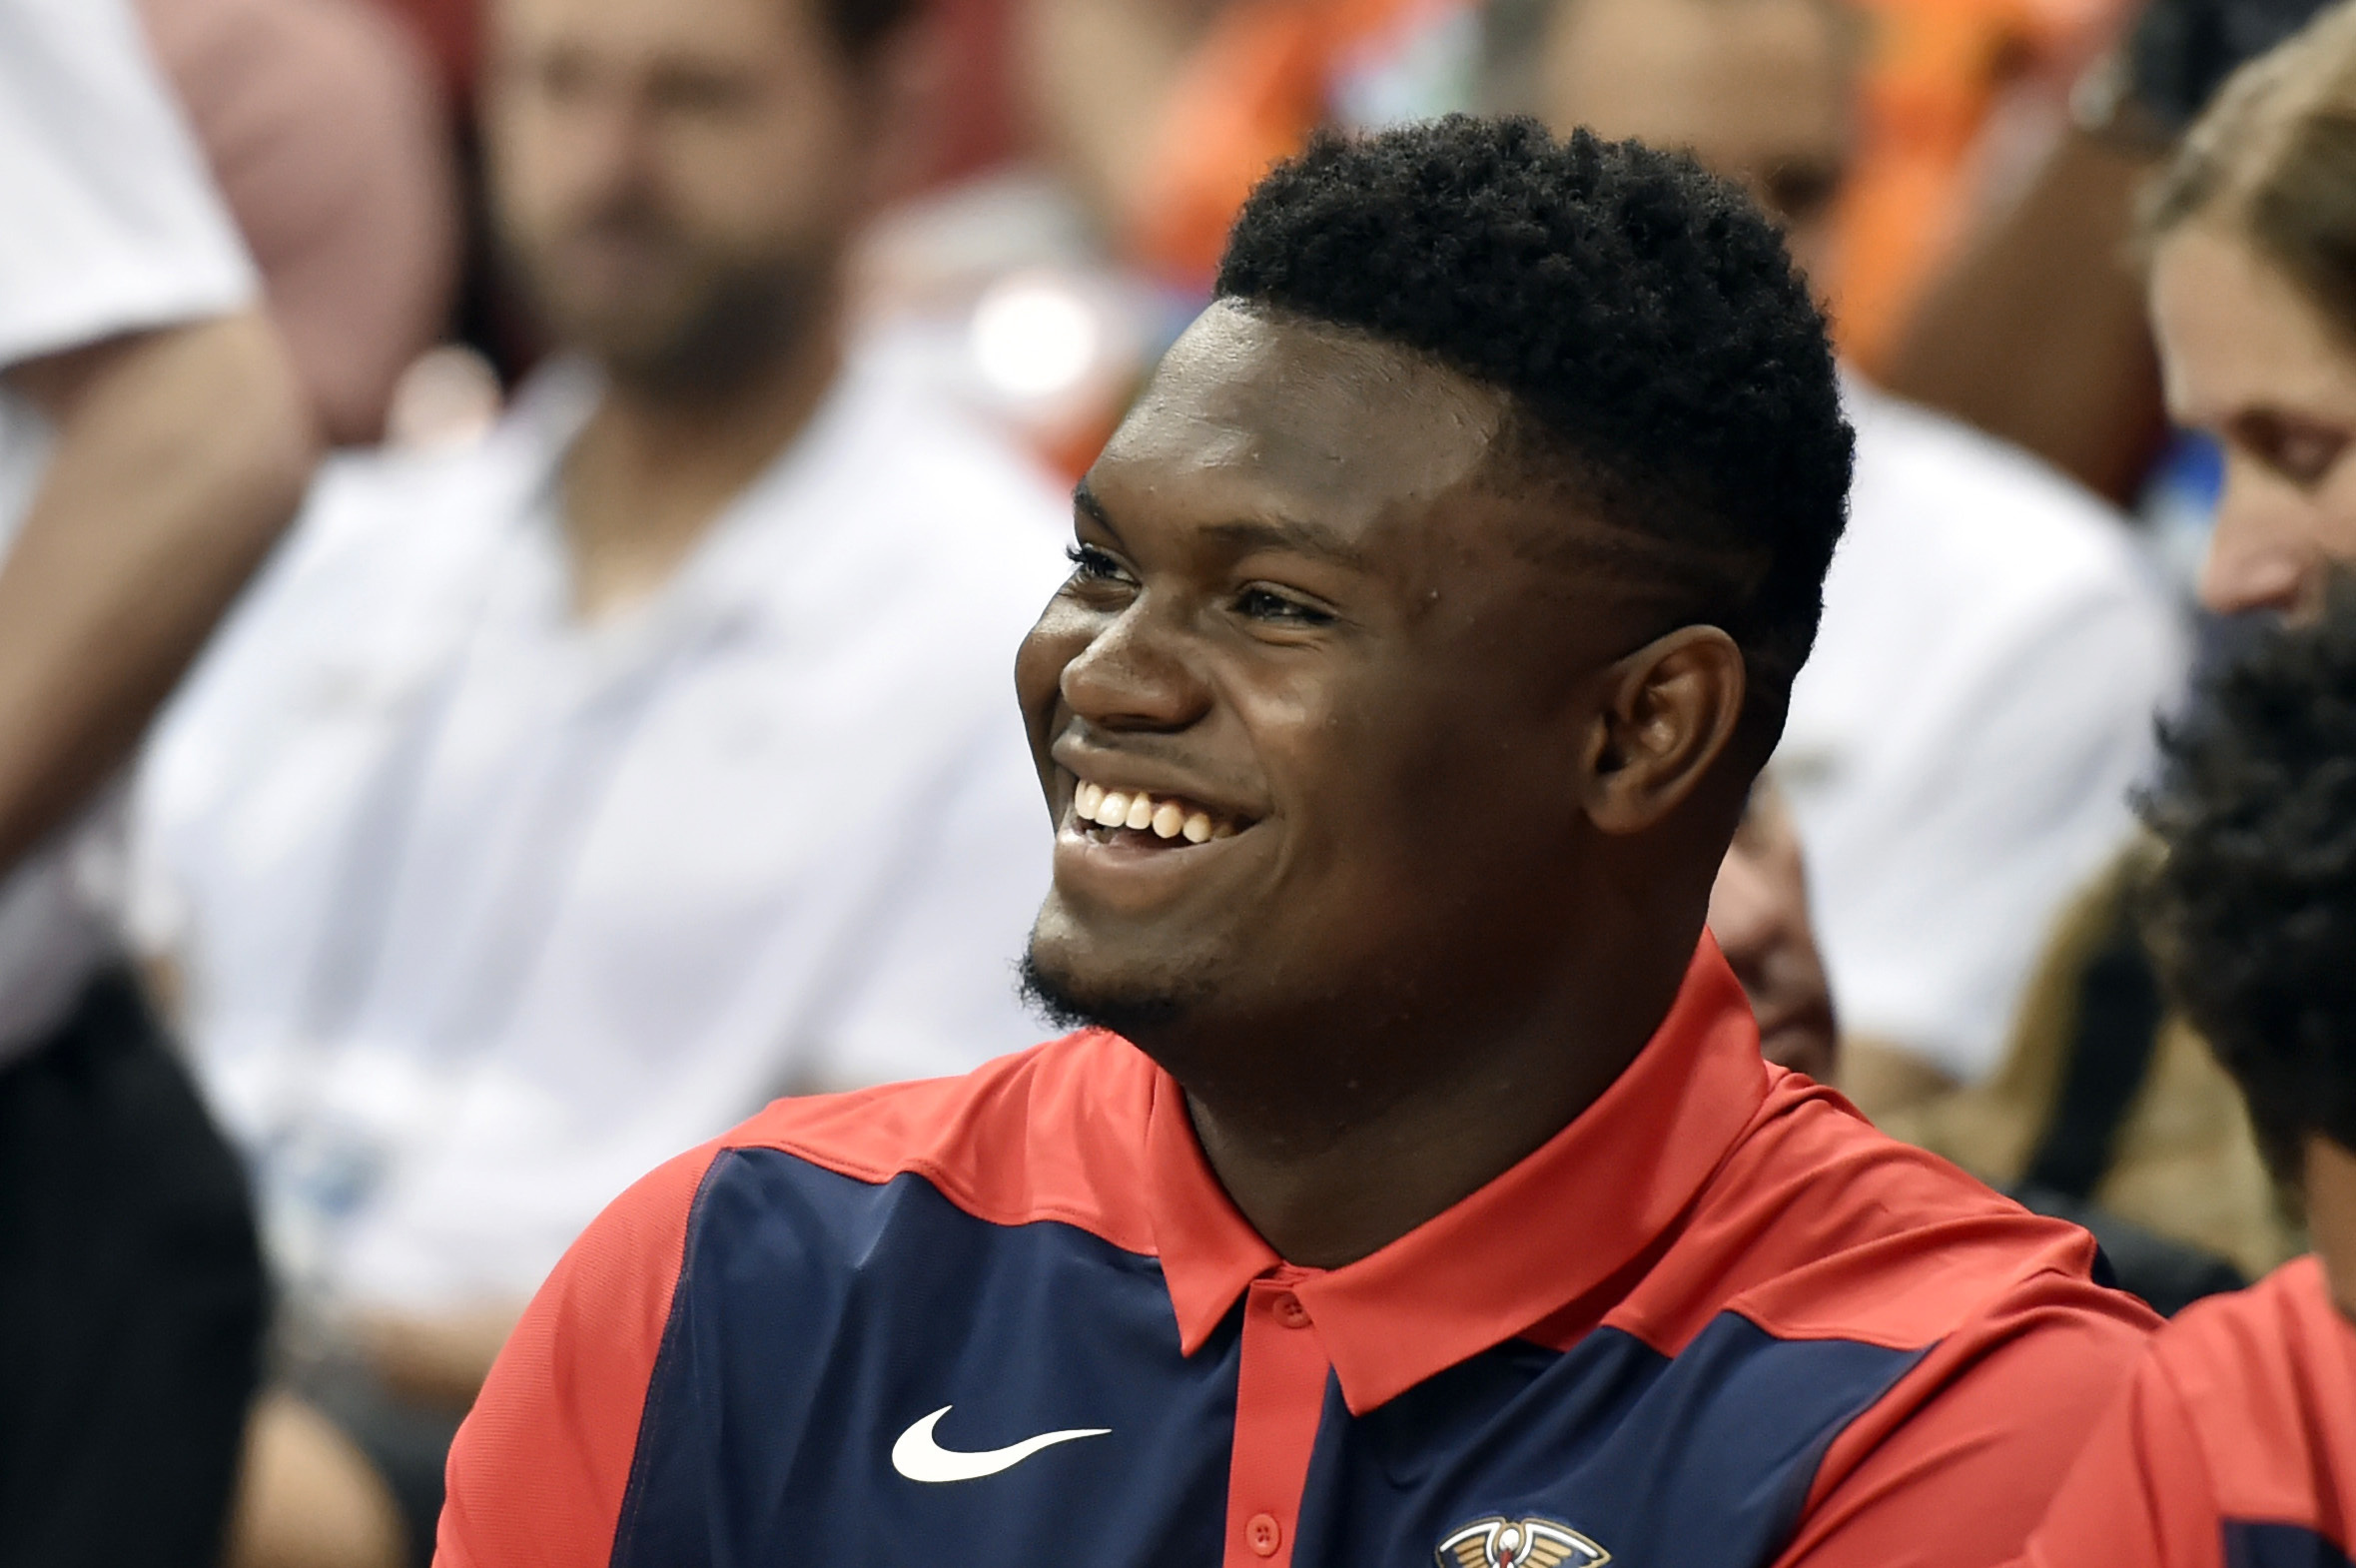 New Orleans Pelicans' Zion Williamson smiles while sitting on the bench during the first half of the team's NBA summer league basketball game against the Washington Wizards on Saturday, July 6, 2019, in Las Vegas. (AP Photo/David Becker)